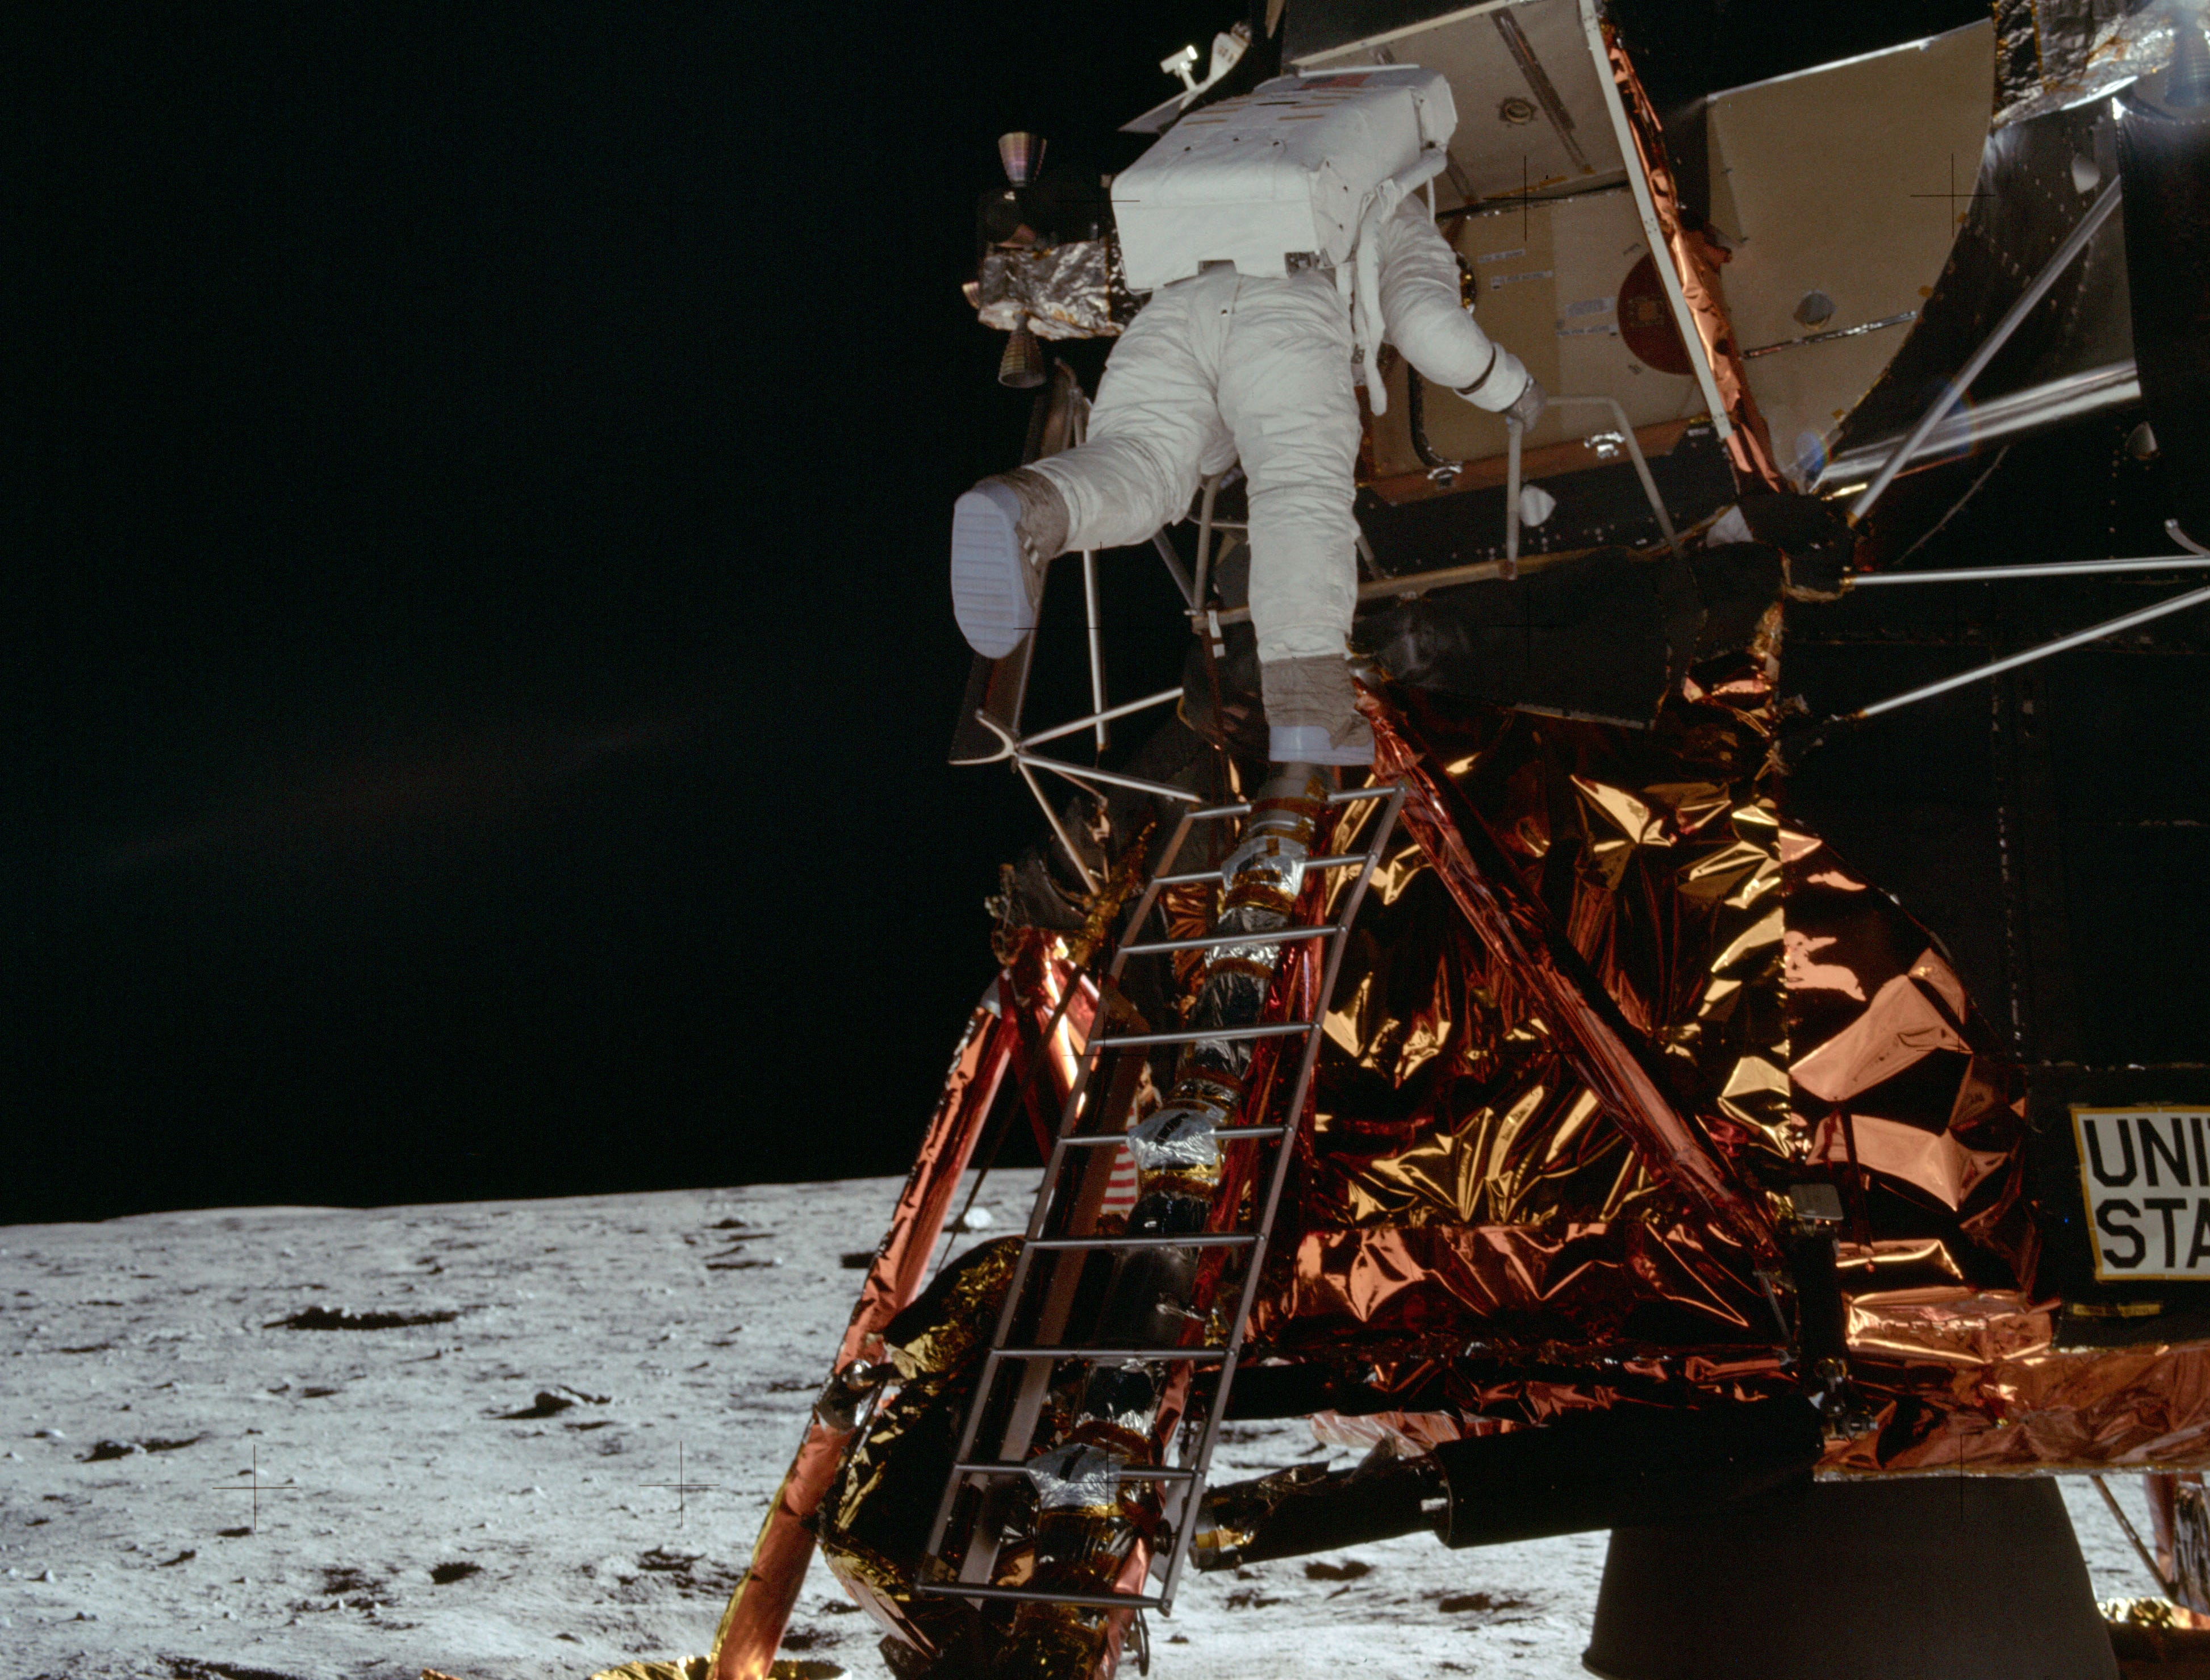 """Astronaut Edwin E. Aldrin Jr., lunar module pilot, egresses the Lunar Module (LM) """"Eagle"""" and begins to descend the steps of the LM ladder as he prepares to walk on the moon."""